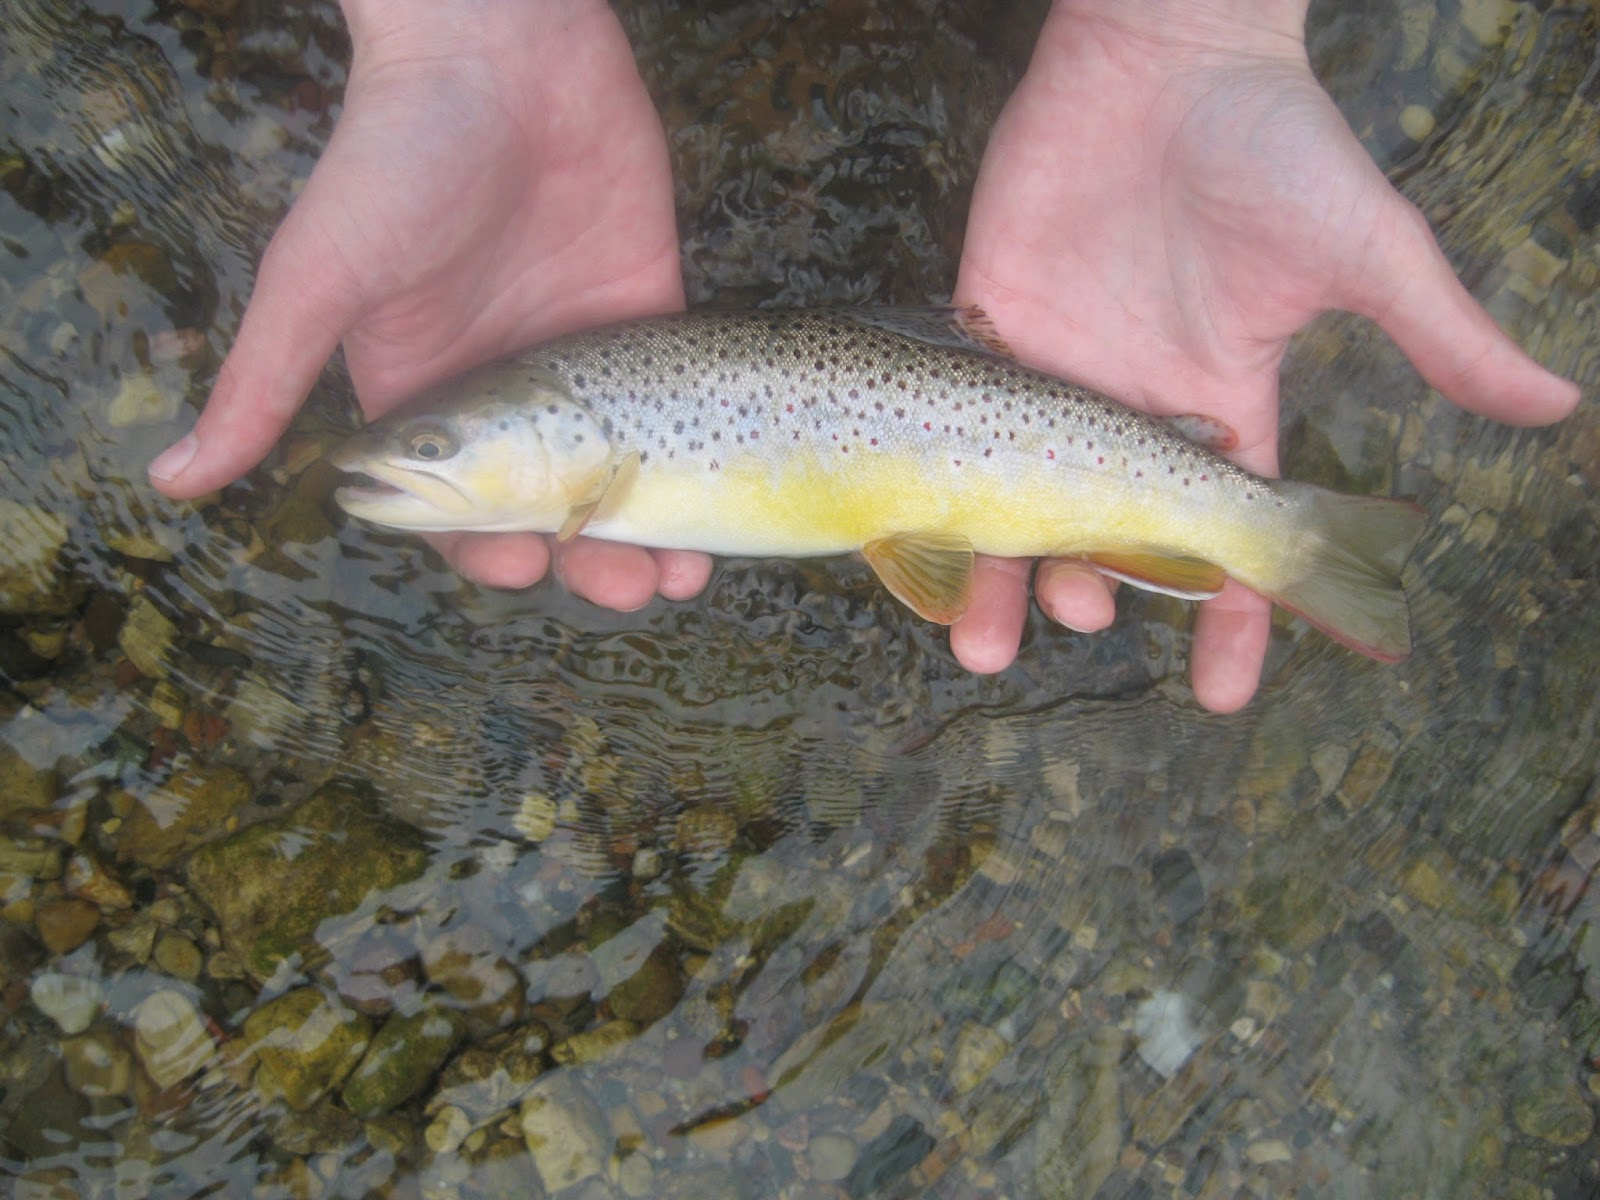 Minnesota driftless fly fishing trip report eagles and trout for Driftless fly fishing